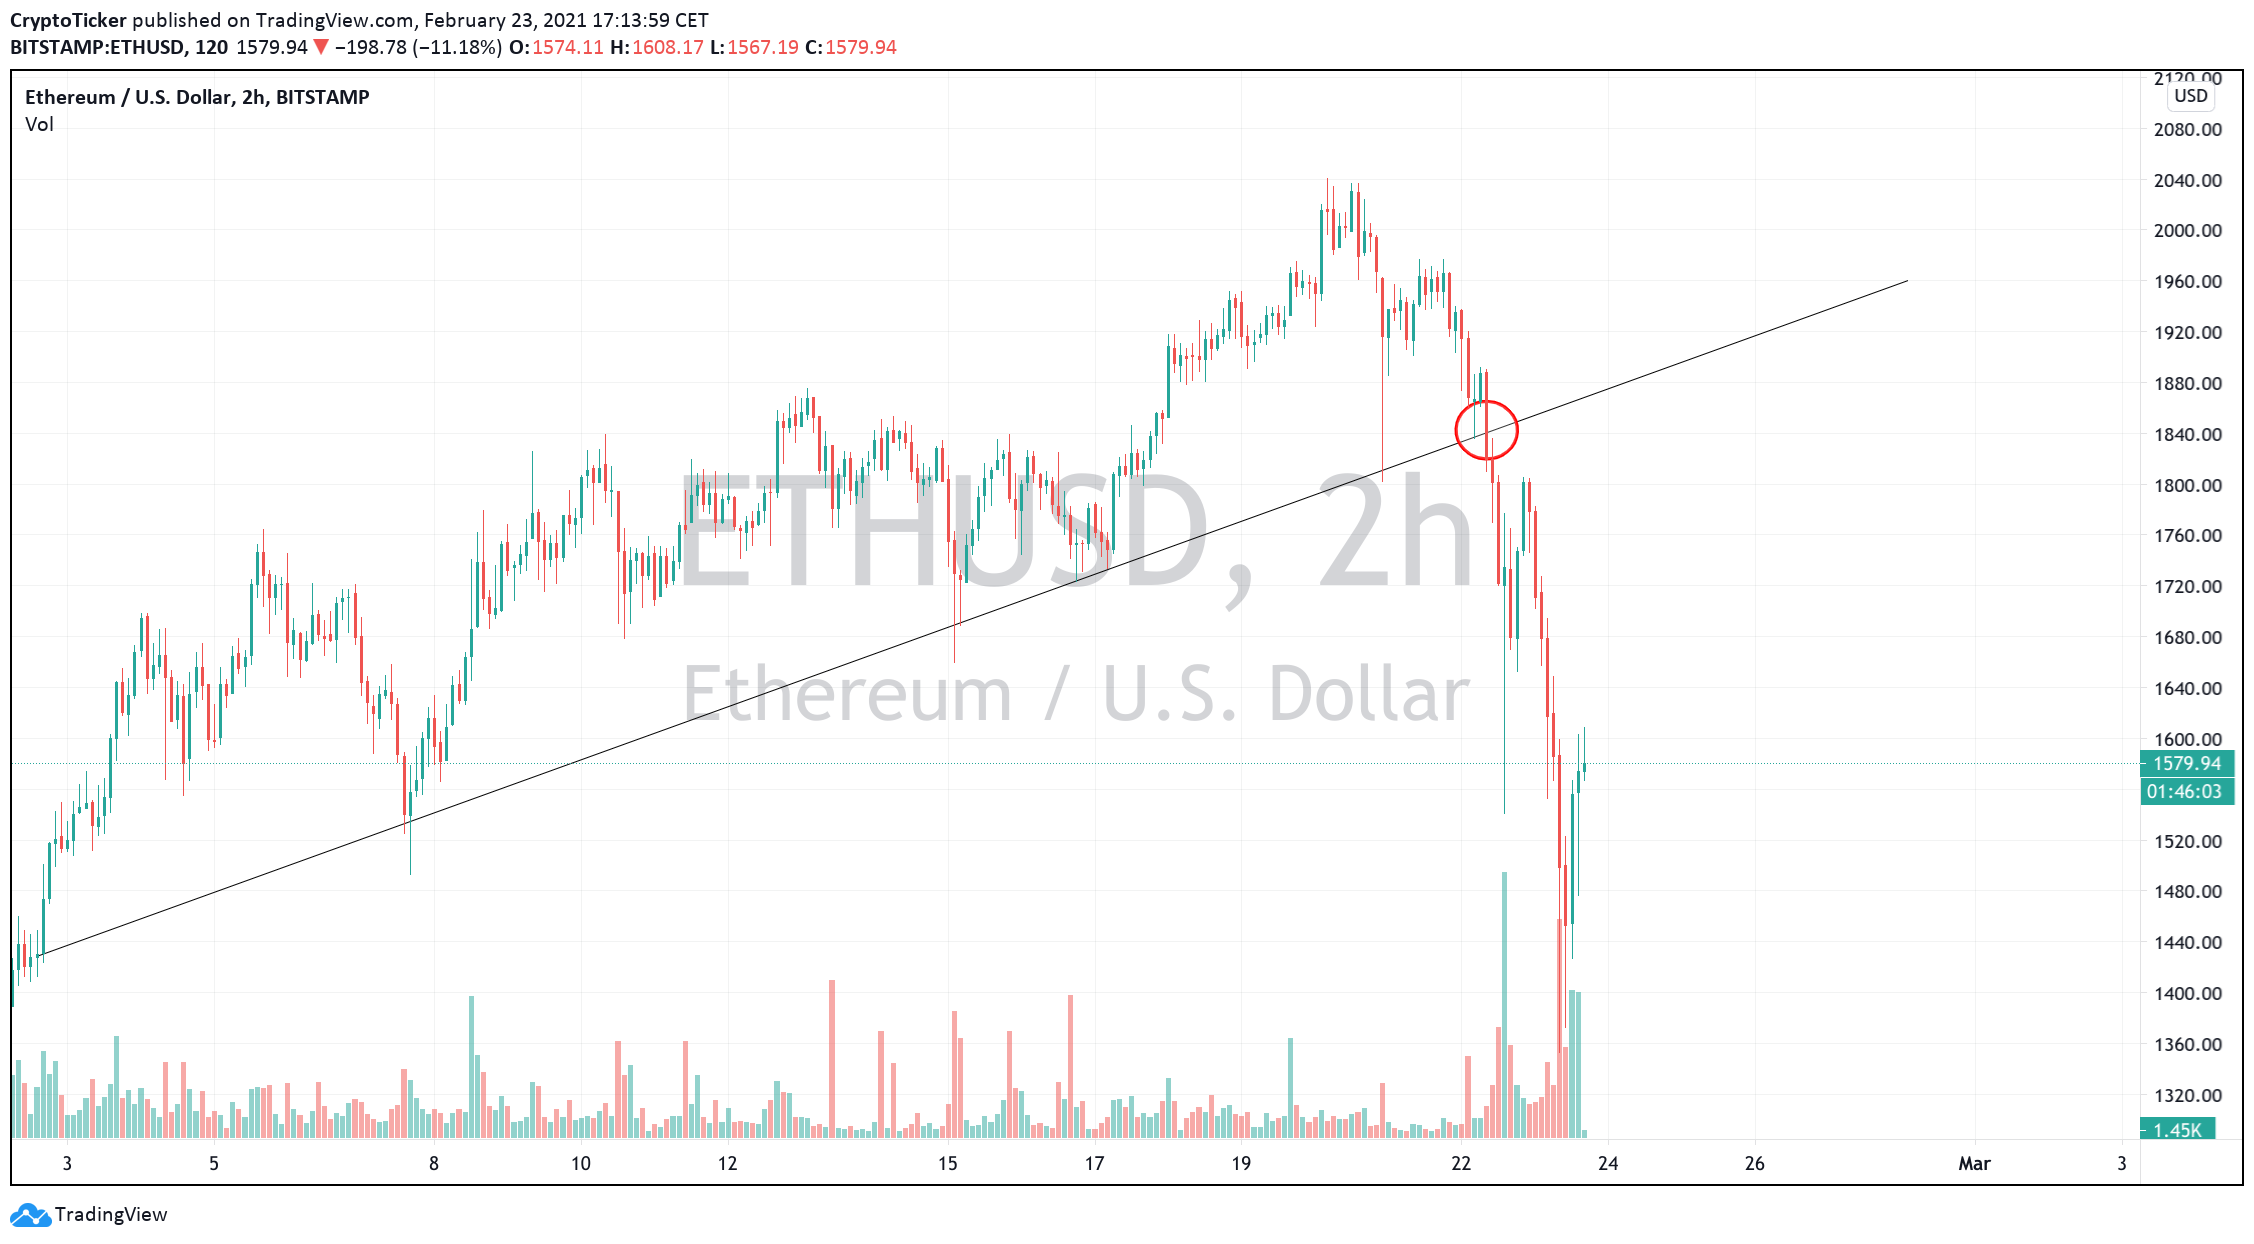 ETH/USD 2-Hour chart showing a clear break in the uptrend